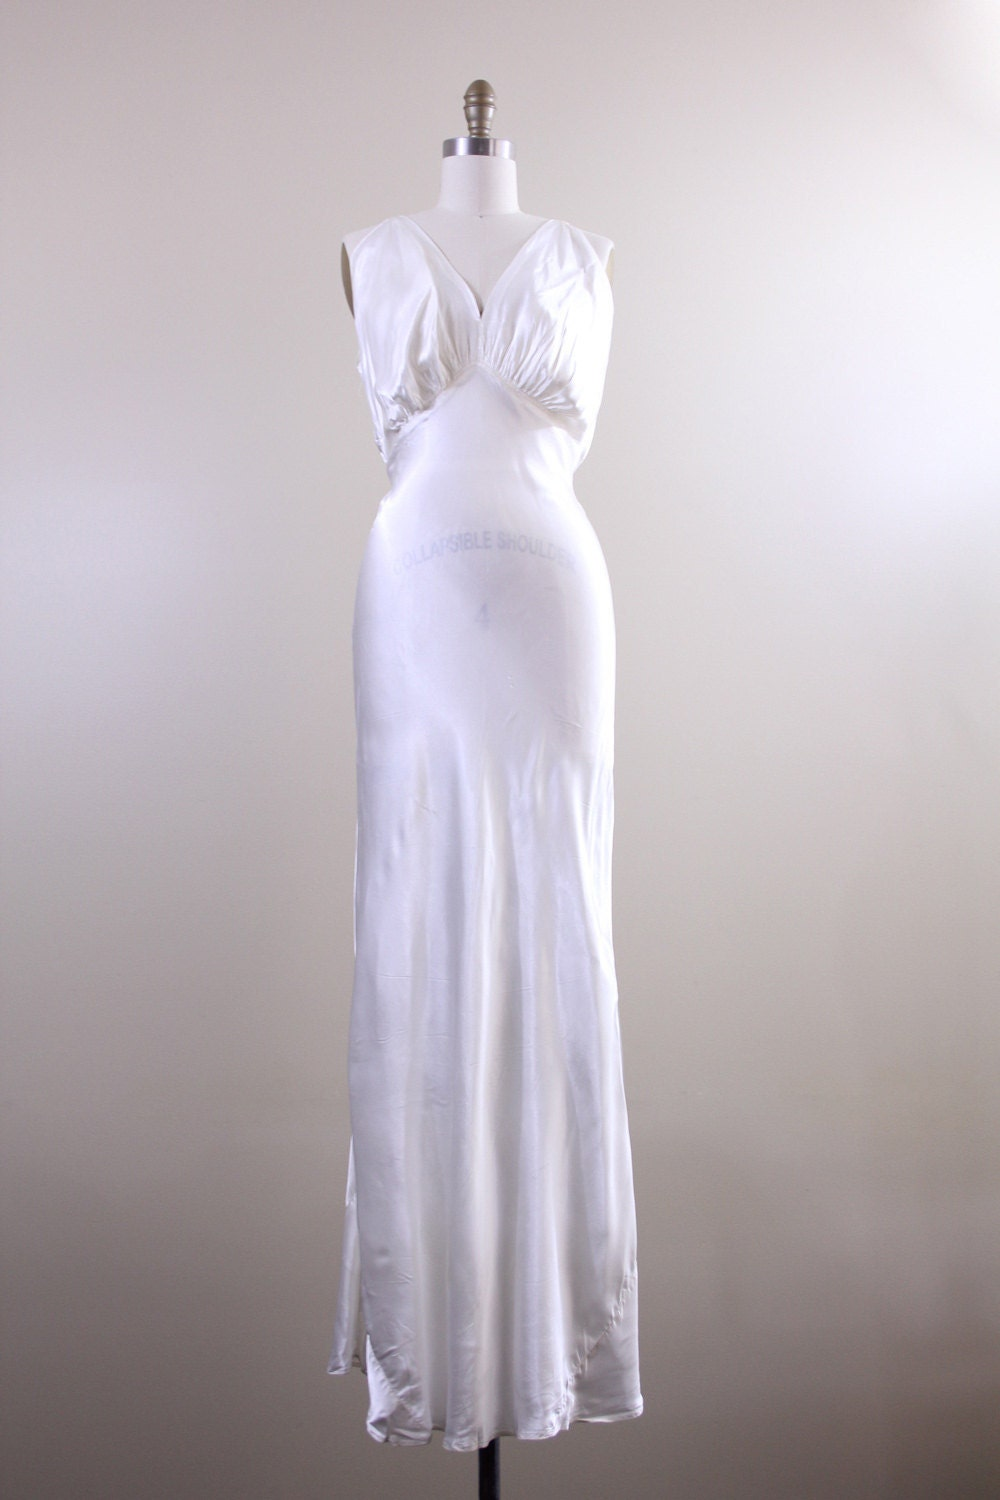 1930s wedding dress or nightgown? | Vintage Fashion Guild ...